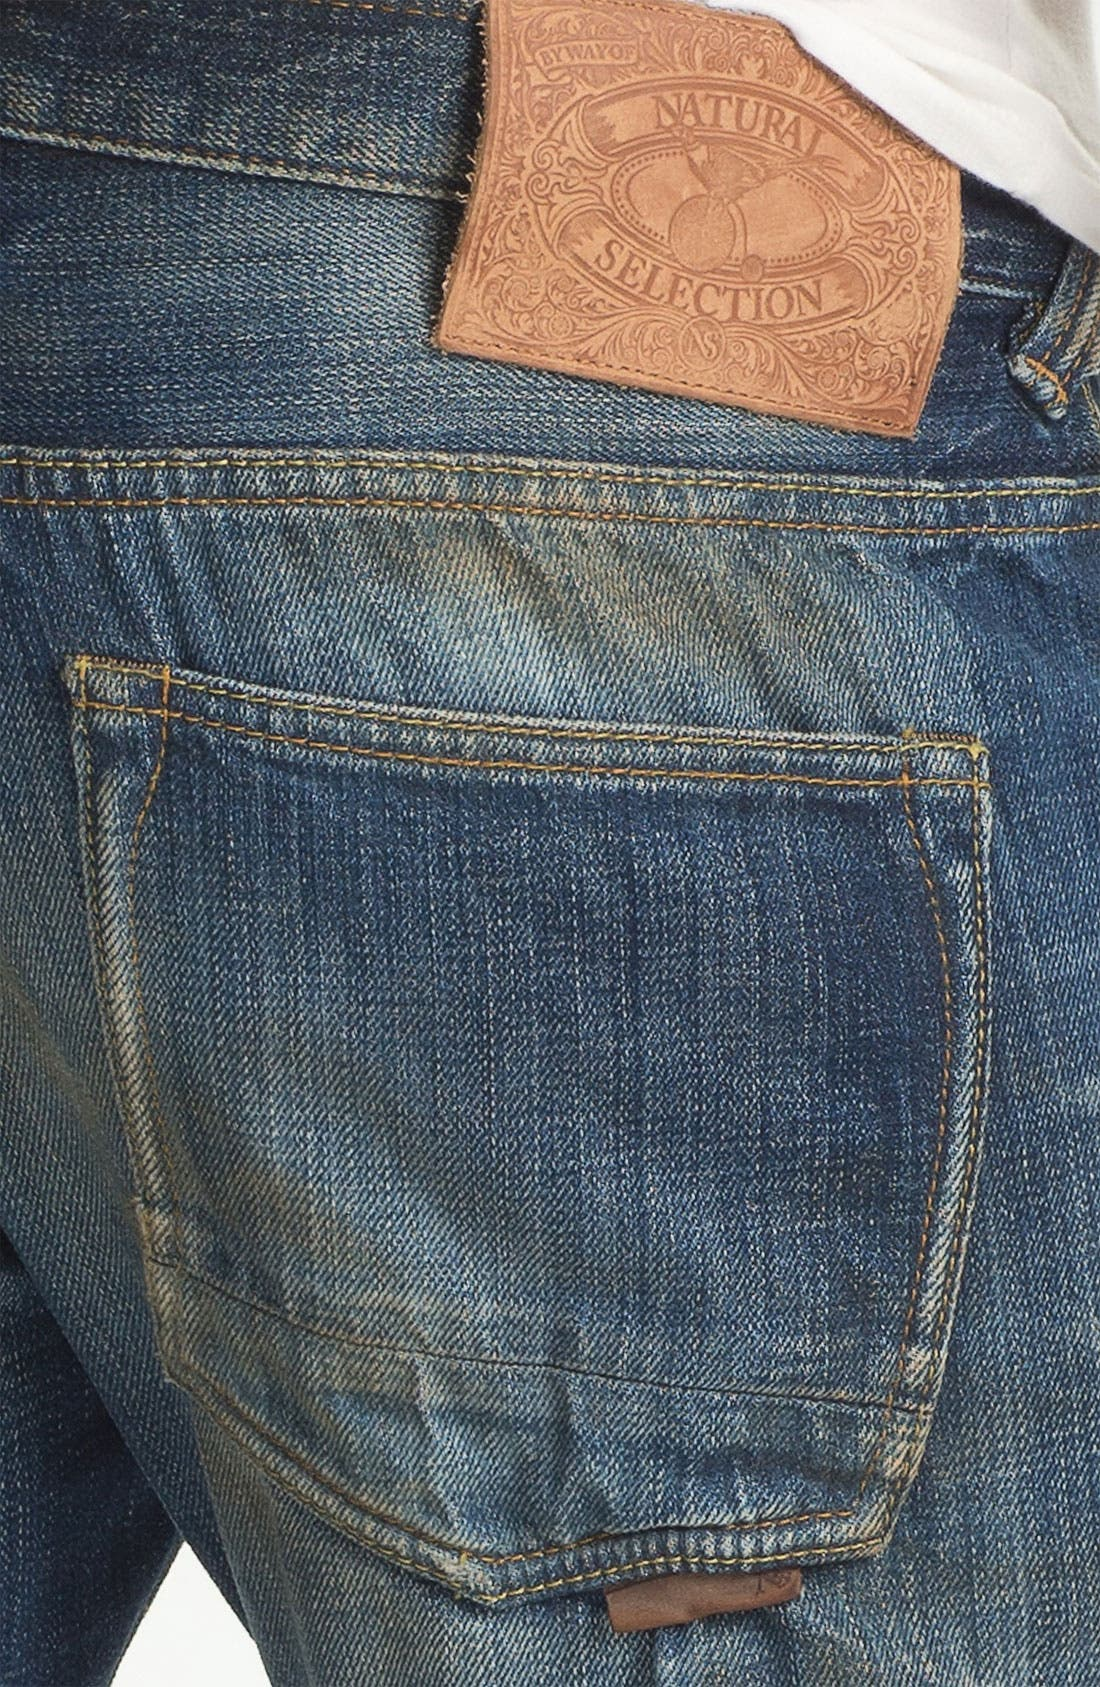 Alternate Image 4  - Natural Selection Denim 'Broken' Narrow Straight Leg Selvedge Jeans (Dune)